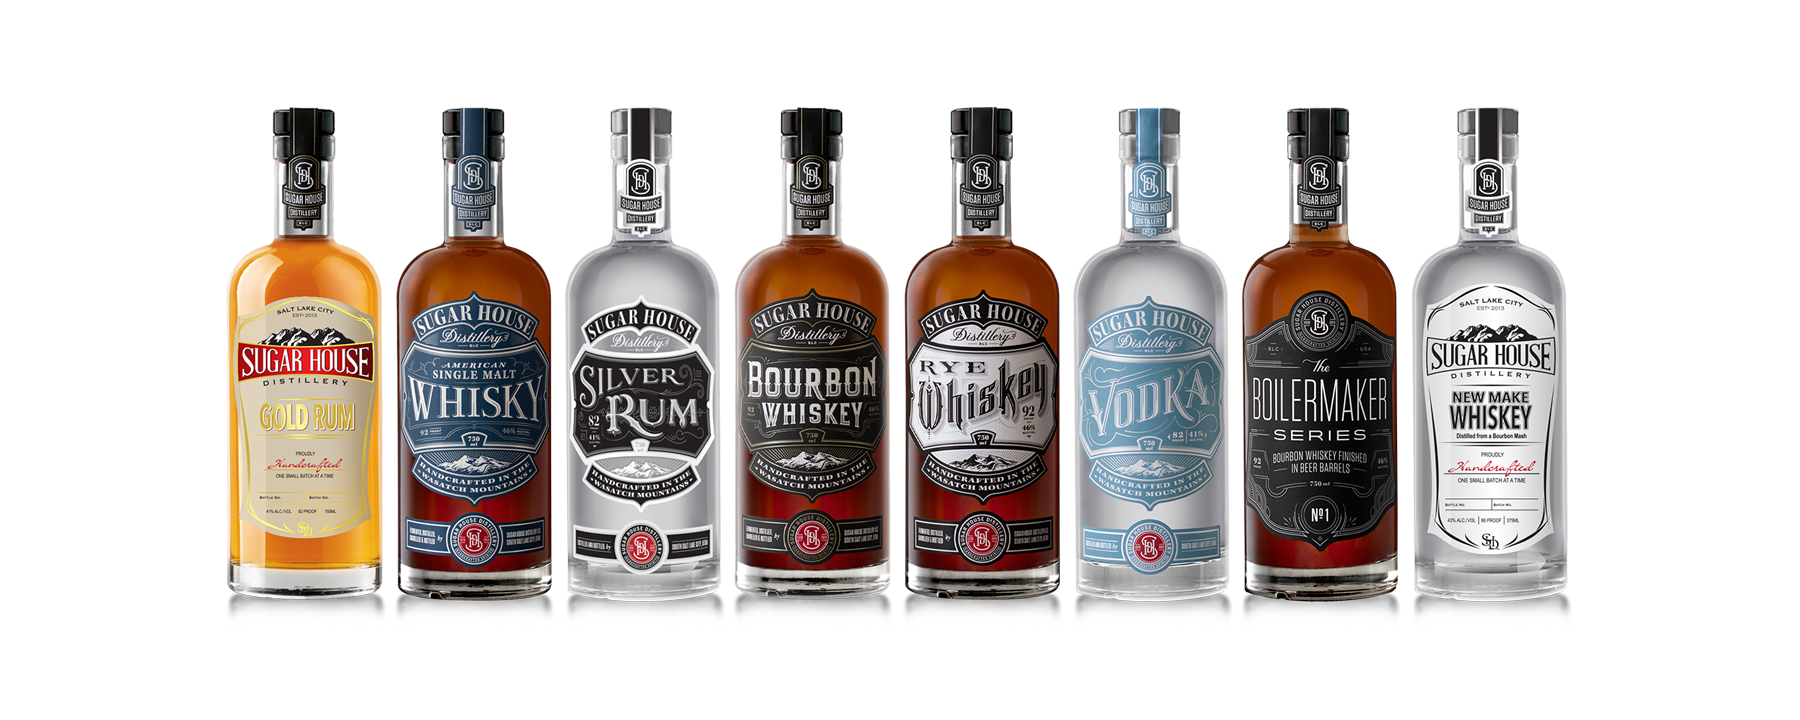 Sugar House distillery Spirits